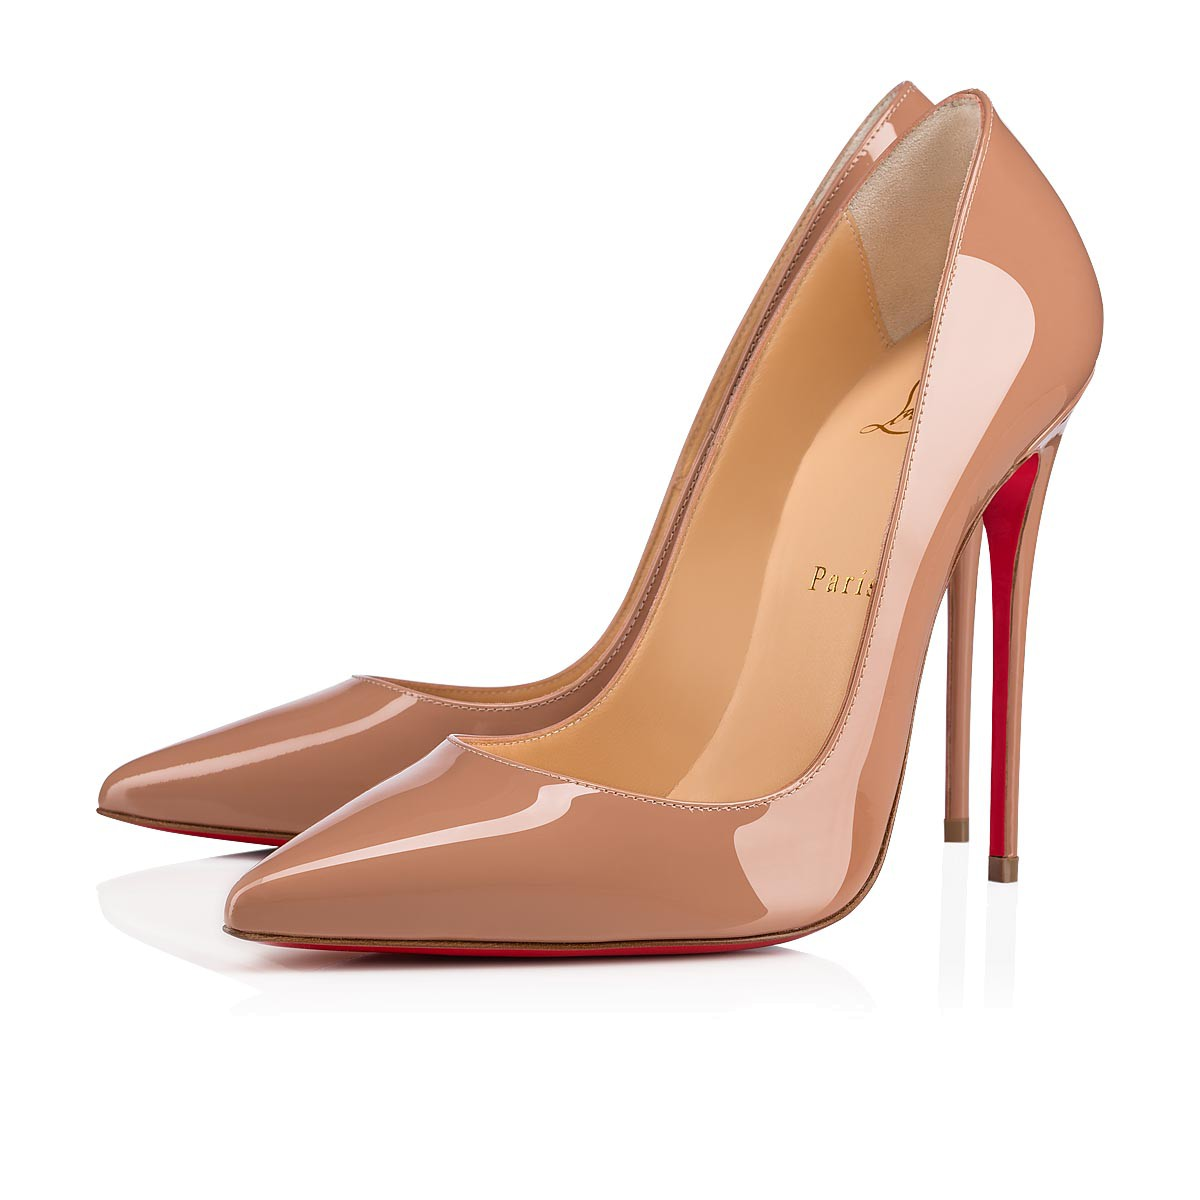 wholesale dealer bffb7 bb994 So Kate 120 Nude Patent Leather - Women Shoes - Christian Louboutin